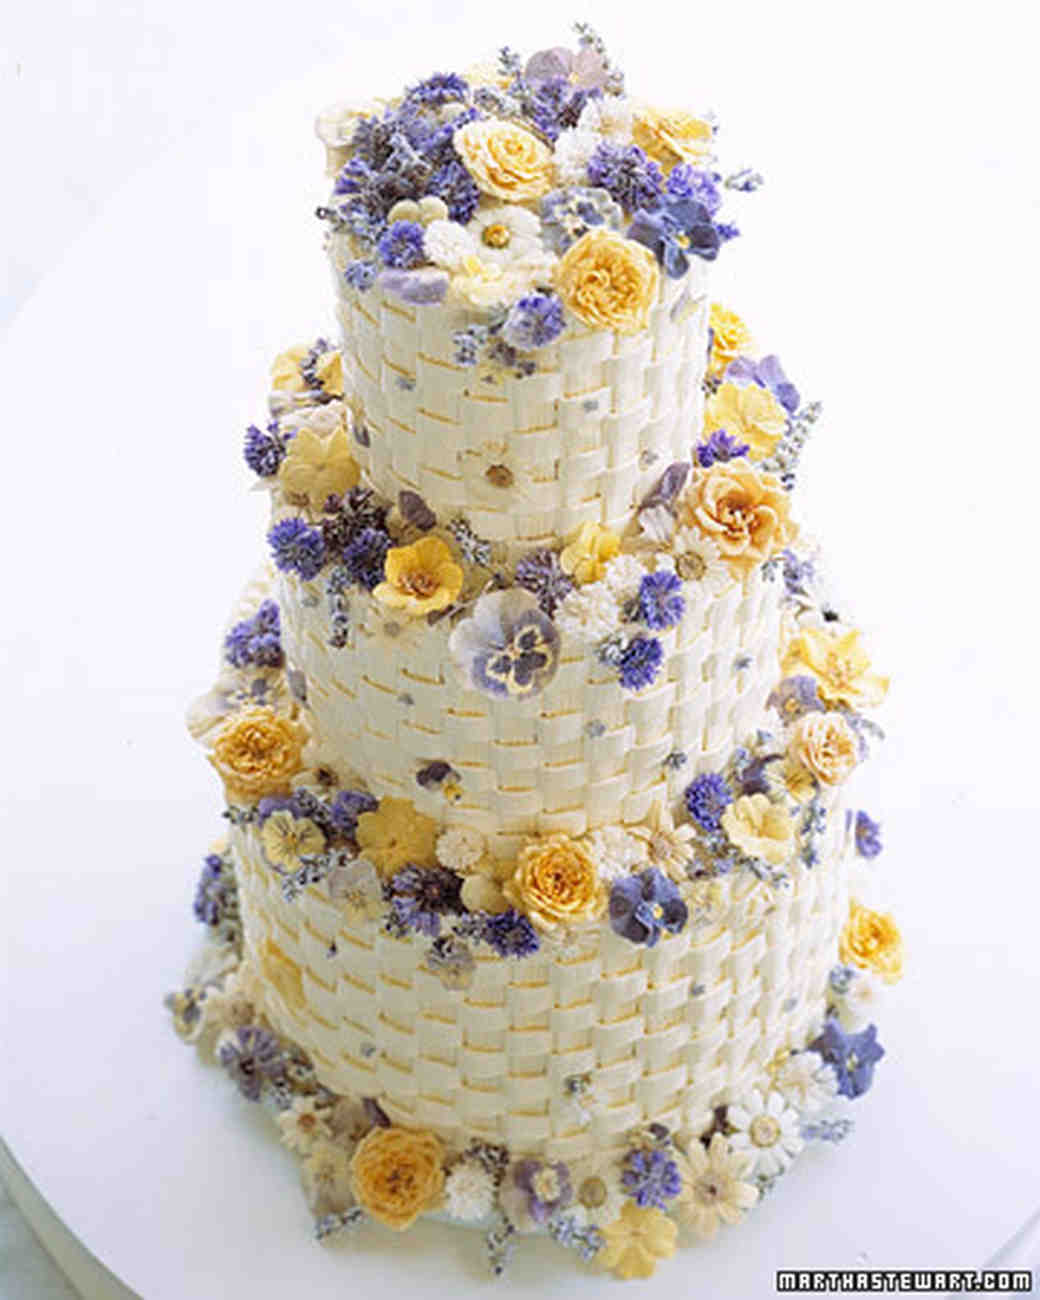 Crystallized Flowers Cake